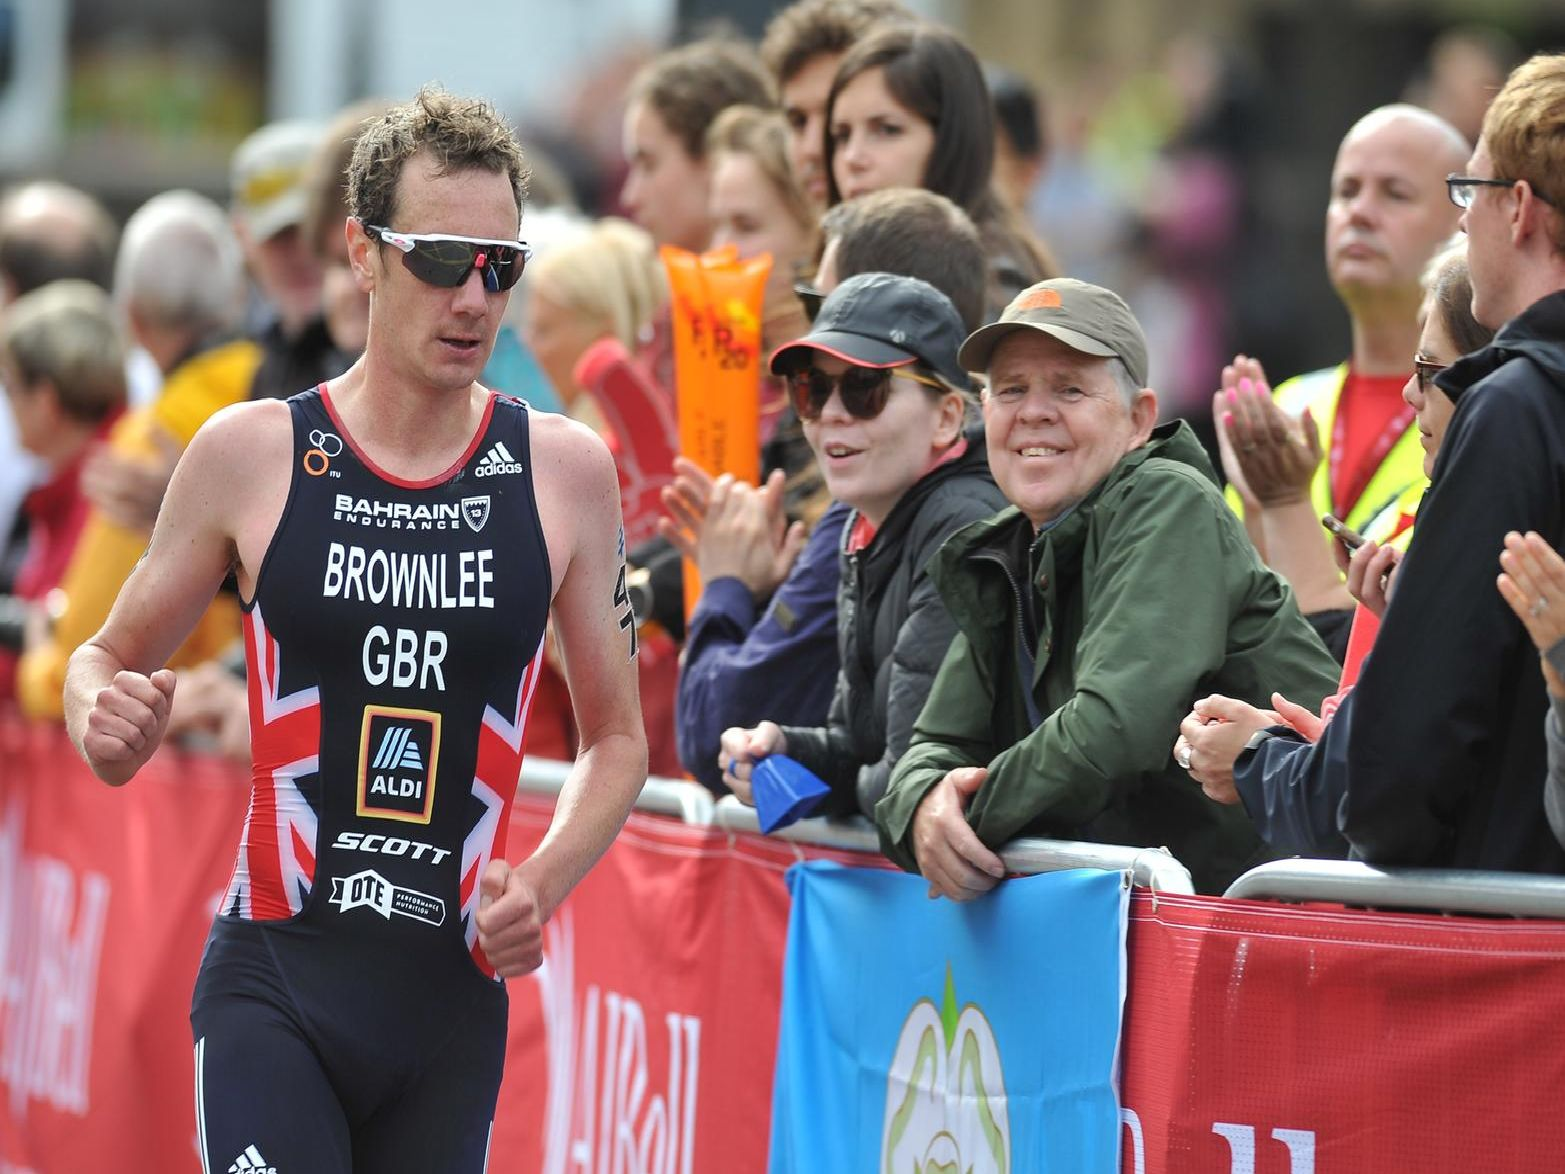 Alistair Brownlee runs past the crowds in Leeds city centre.